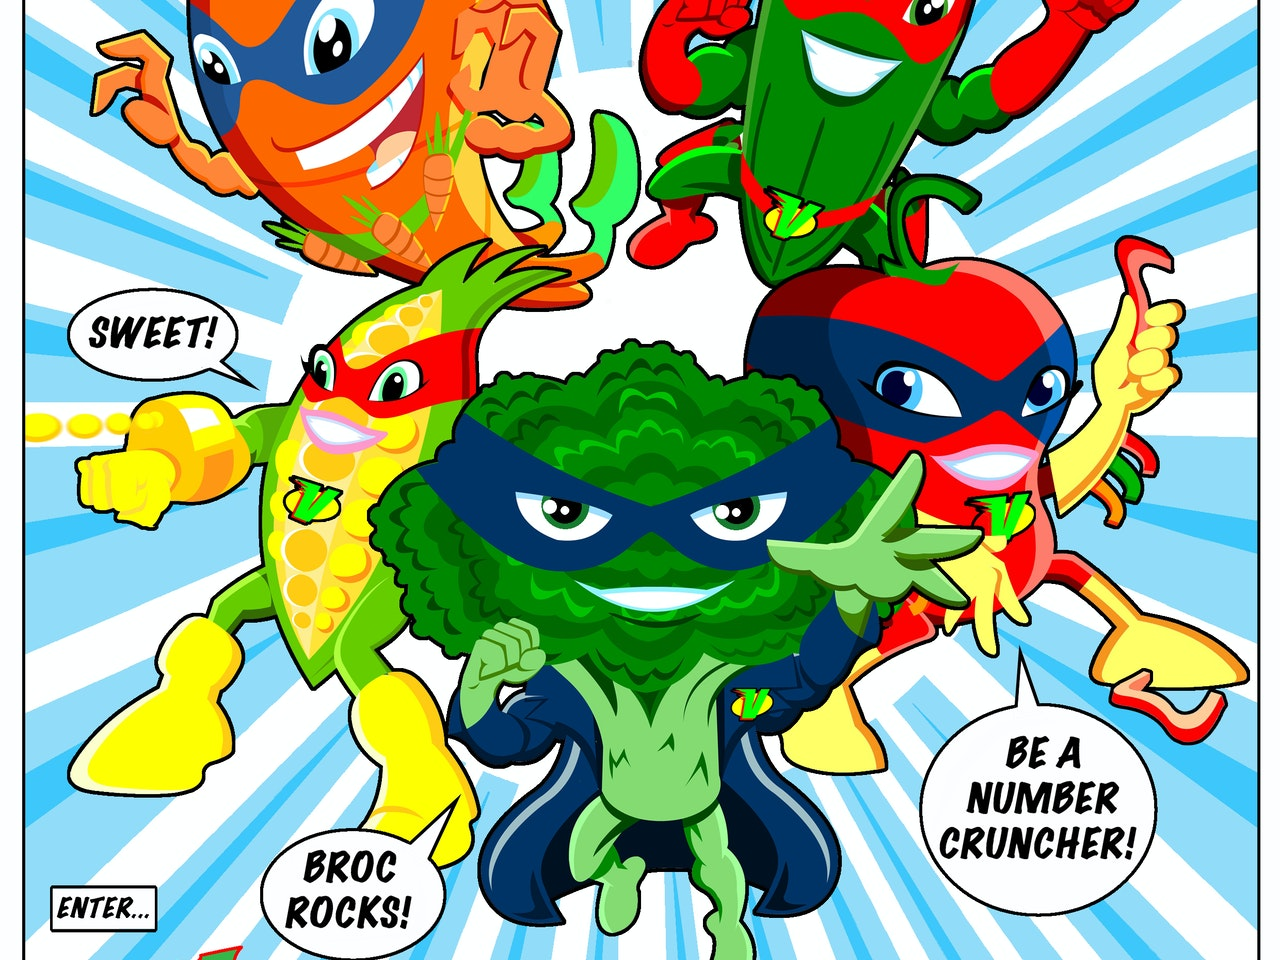 brocolli cucumber carrot pepper sweetcorn hero fantasy sci fi food vegetable healthy eating health superheroes five a day fruit  burger Book cover childrens illustration animation funny  humorous comical colourful graphic novel comic strip cartoon comic book manga anime educational publishing